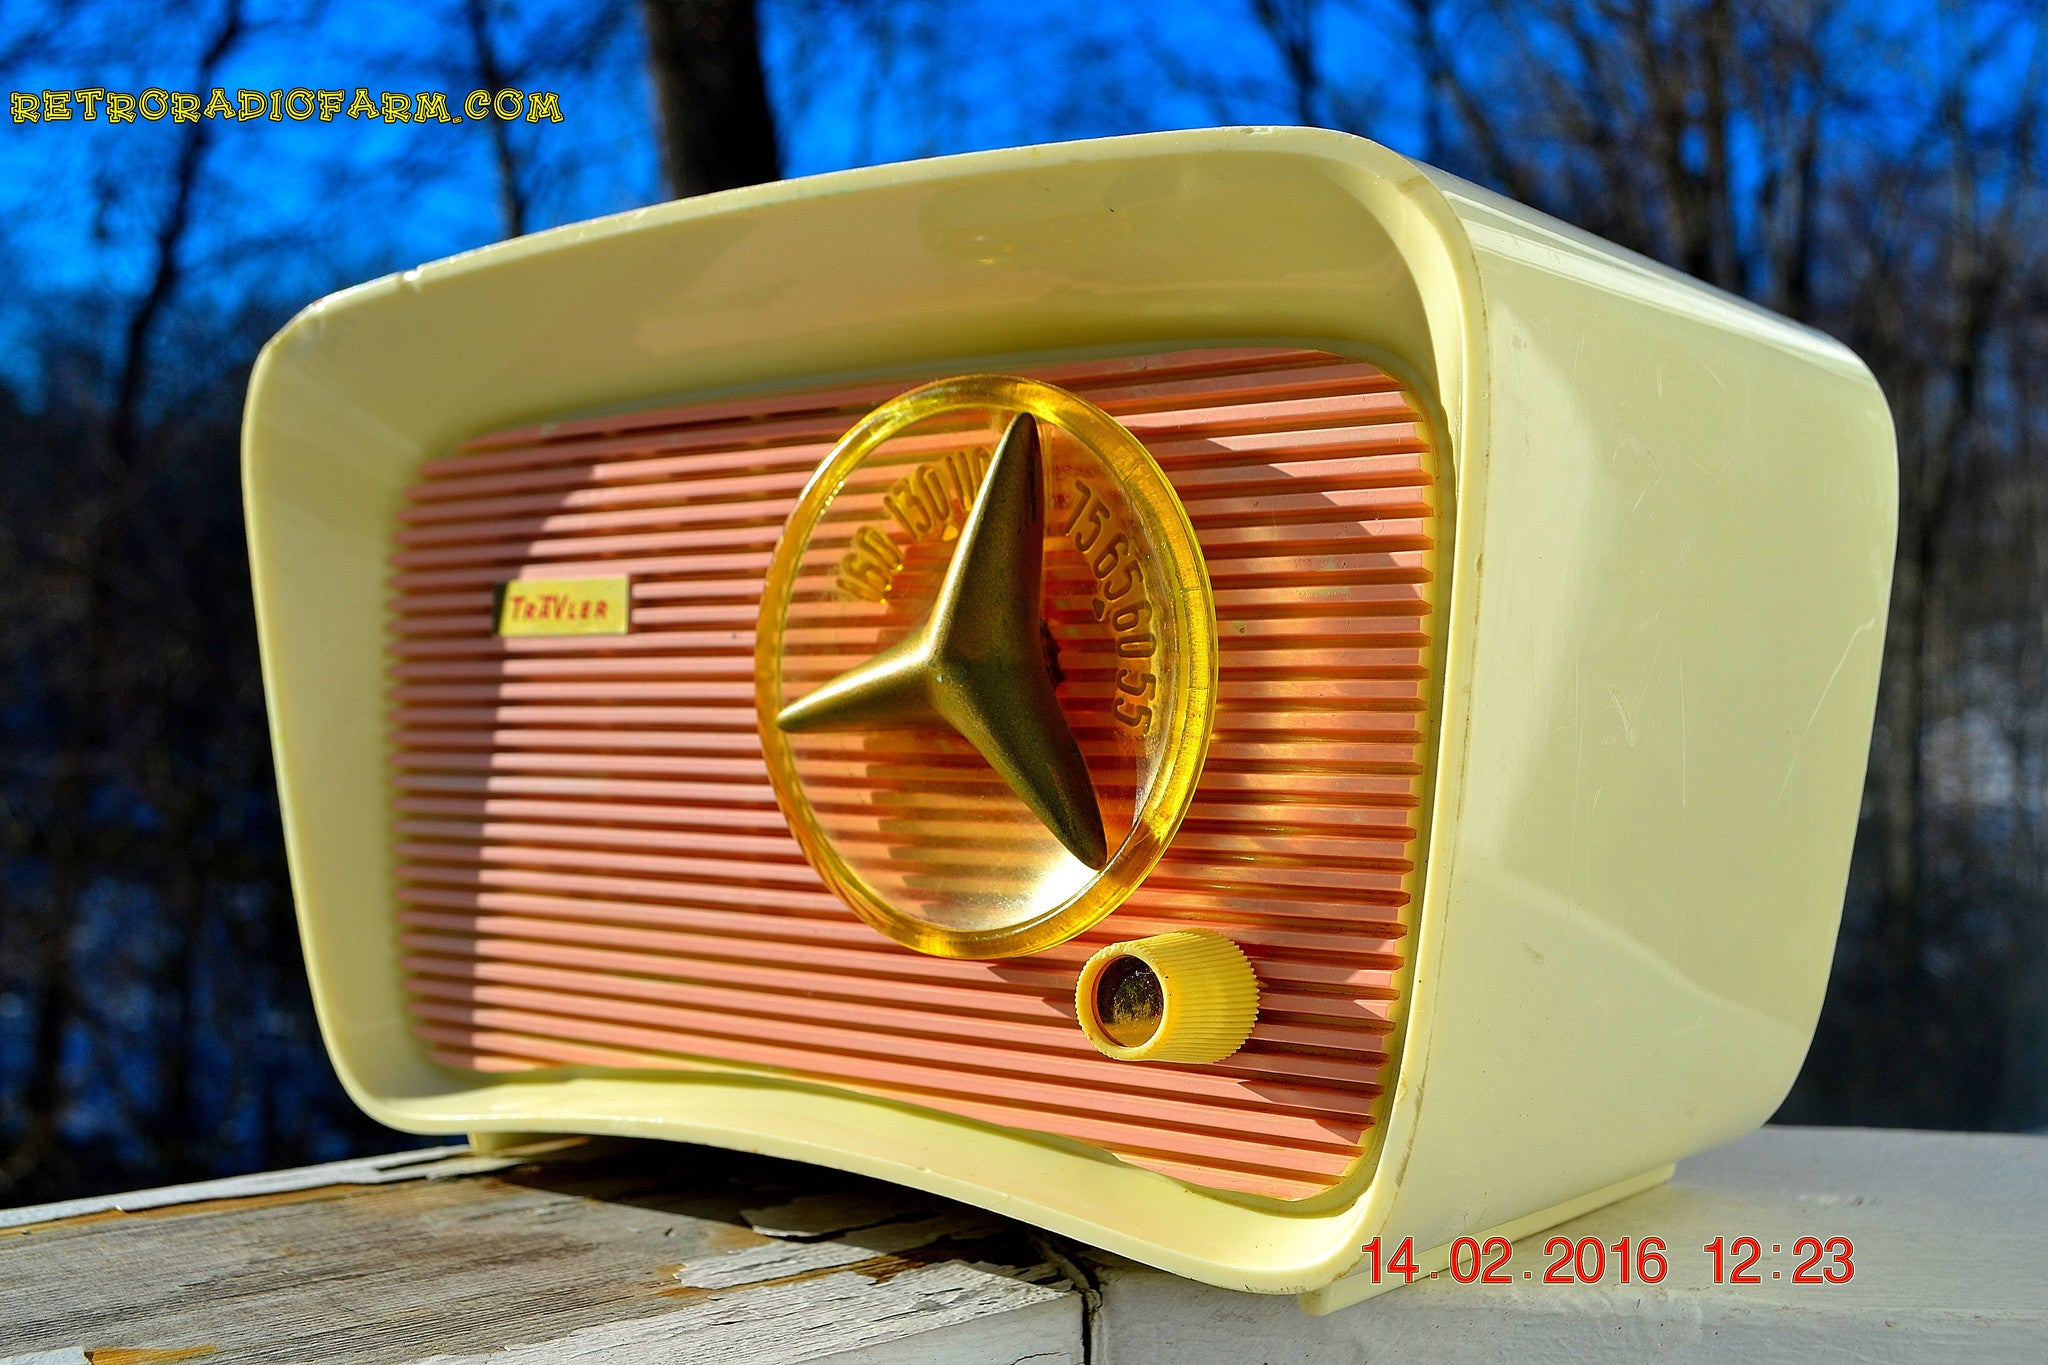 SOLD! - Mar 11, 2016 - SO JETSONS LOOKING Retro Vintage Pink and Black 1959 Travler T-204 AM Tube Radio So Cute! , Vintage Radio - Travler, Retro Radio Farm  - 1